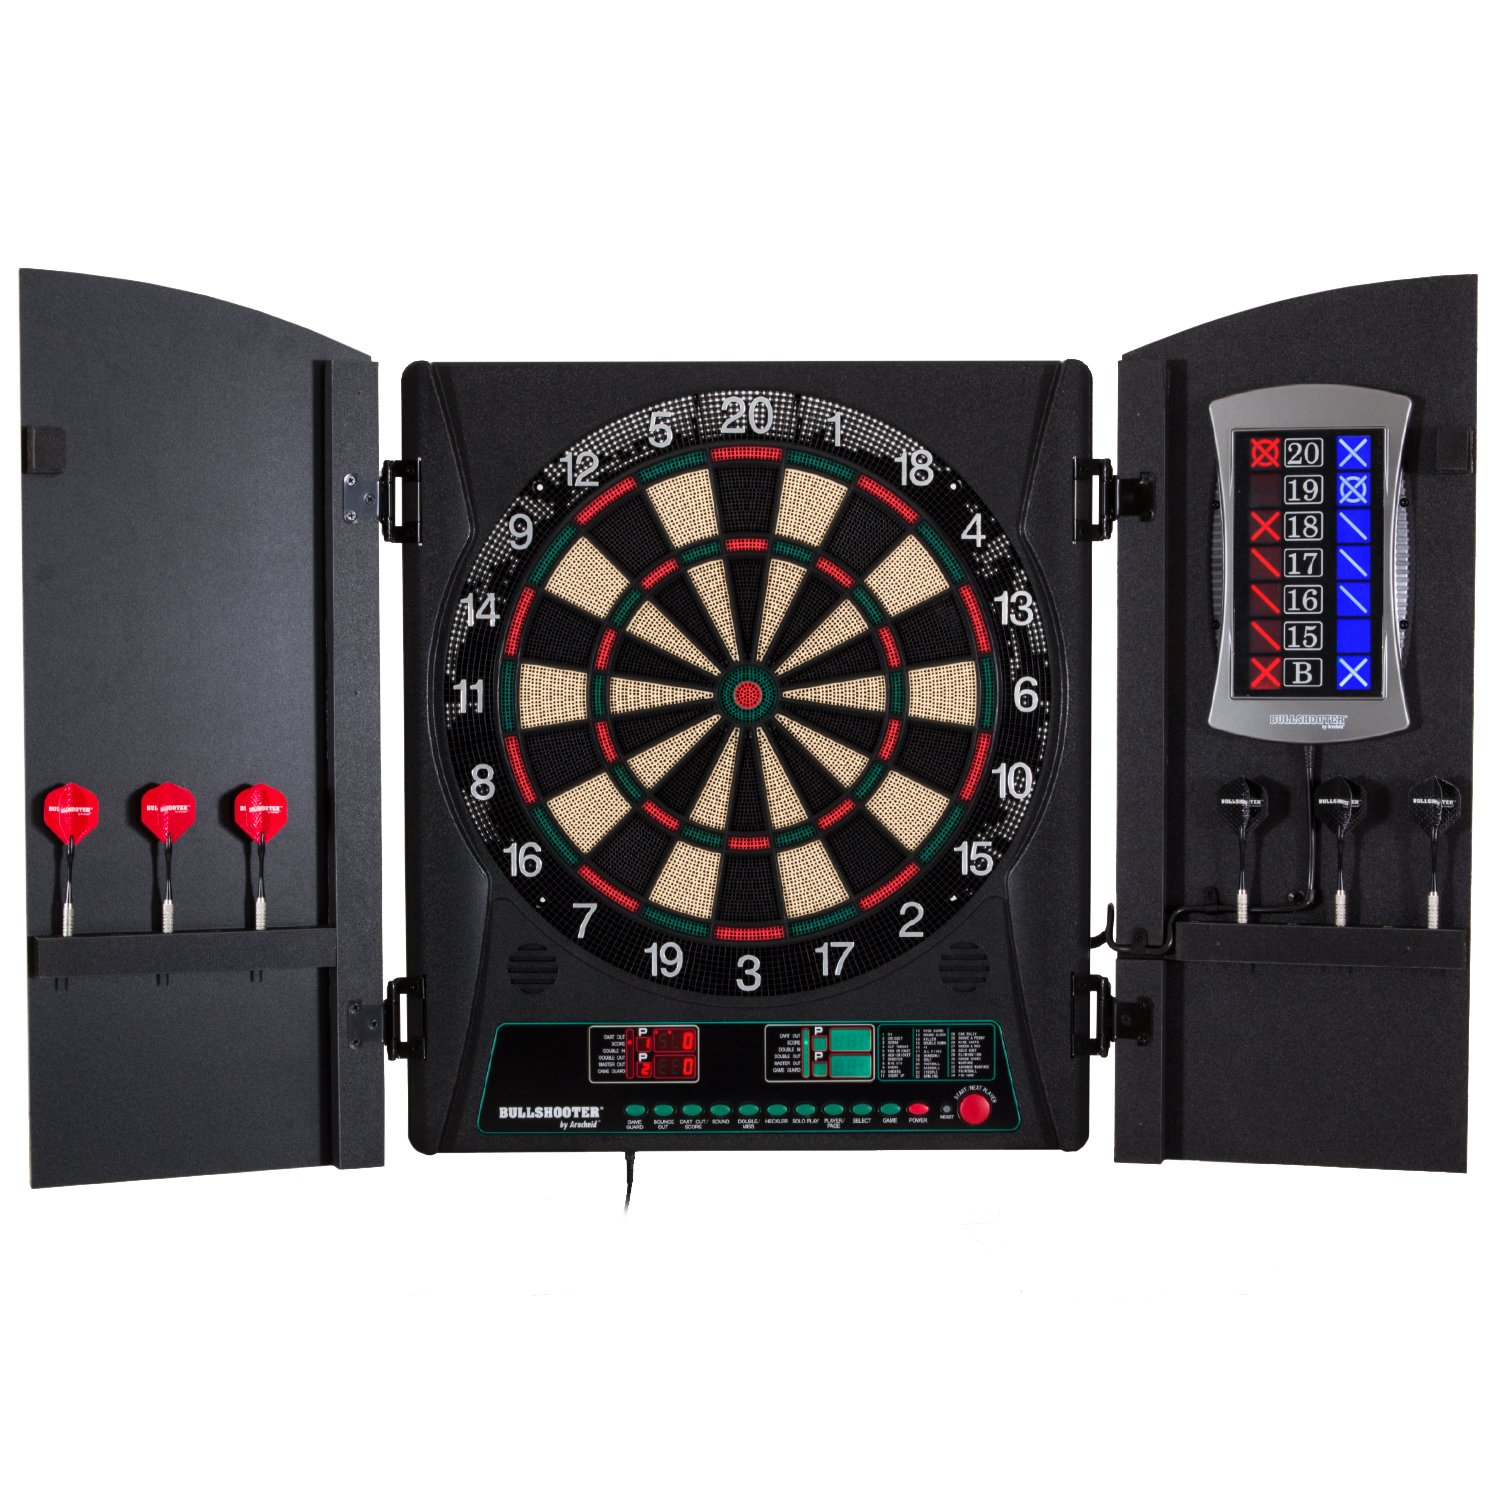 Bullshooter by Arachnid Crickettmaxx 1.0 Electronic Dartboard Cabinet Set by Arachnid